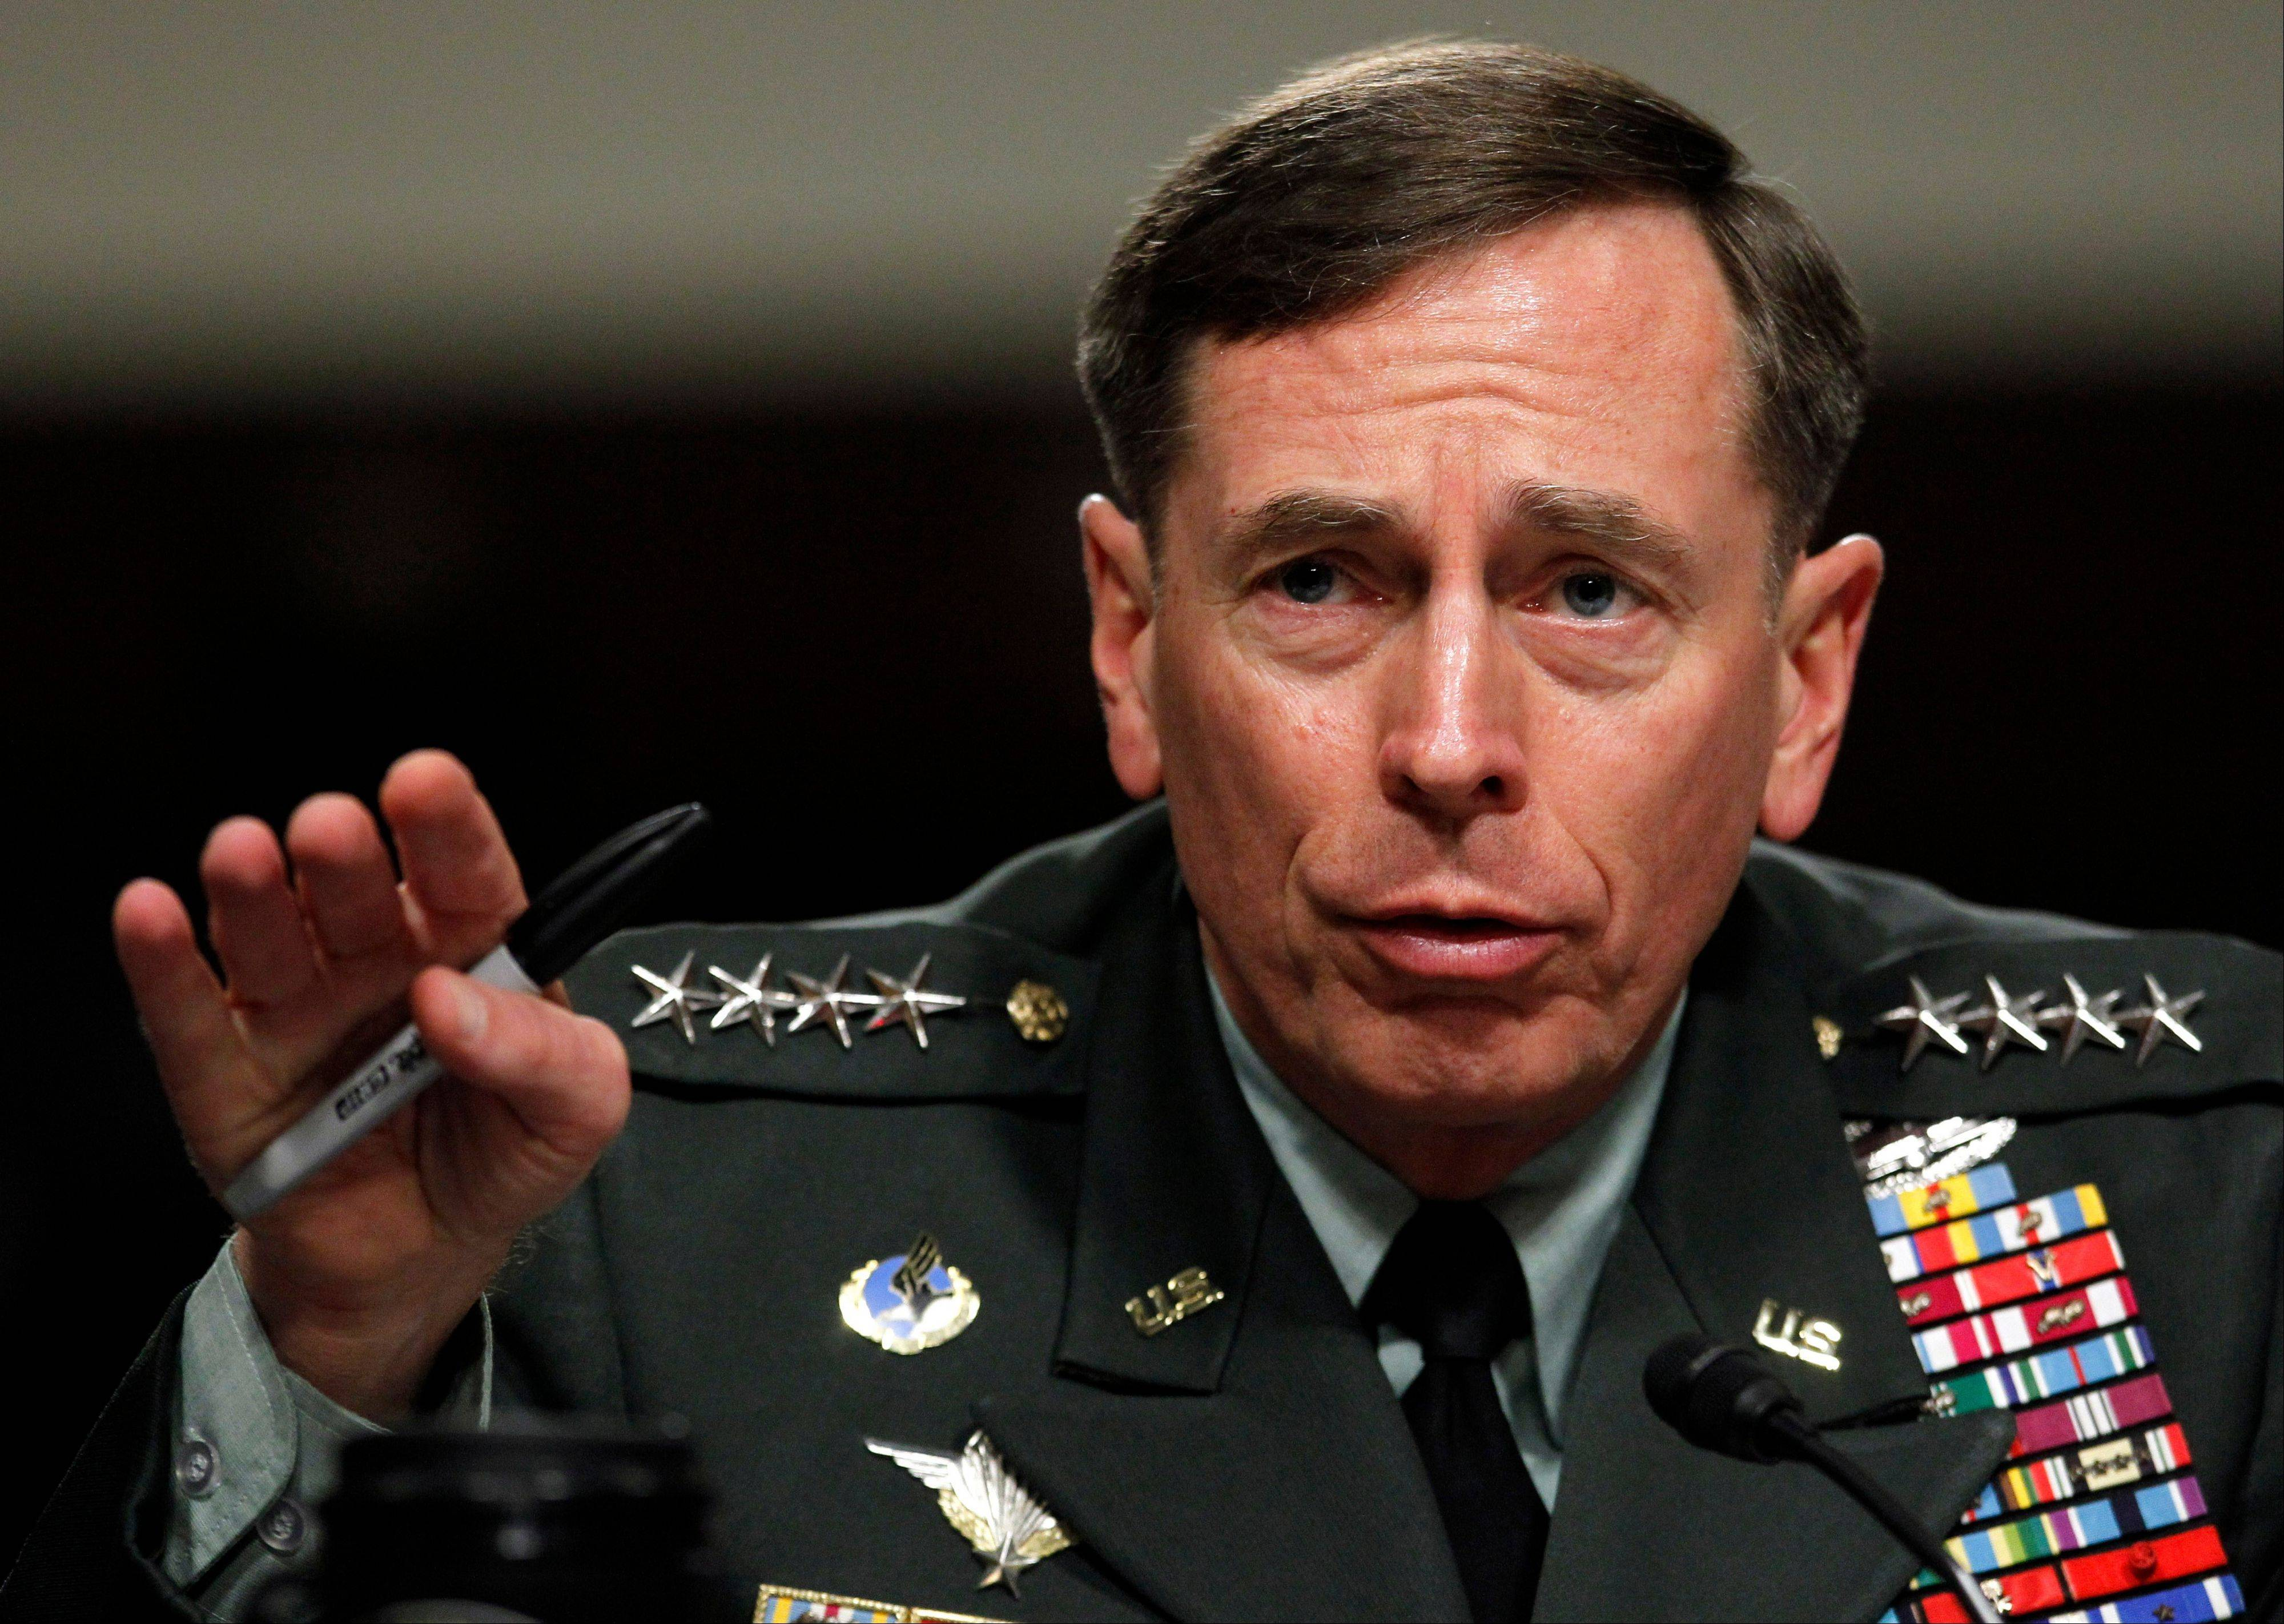 David Petraeus, the retired four-star general who resigned as director of the CIA after admitting he had an extramarital affair, has landed on his feet with a new gig in �Call of Duty: Black Ops II.�